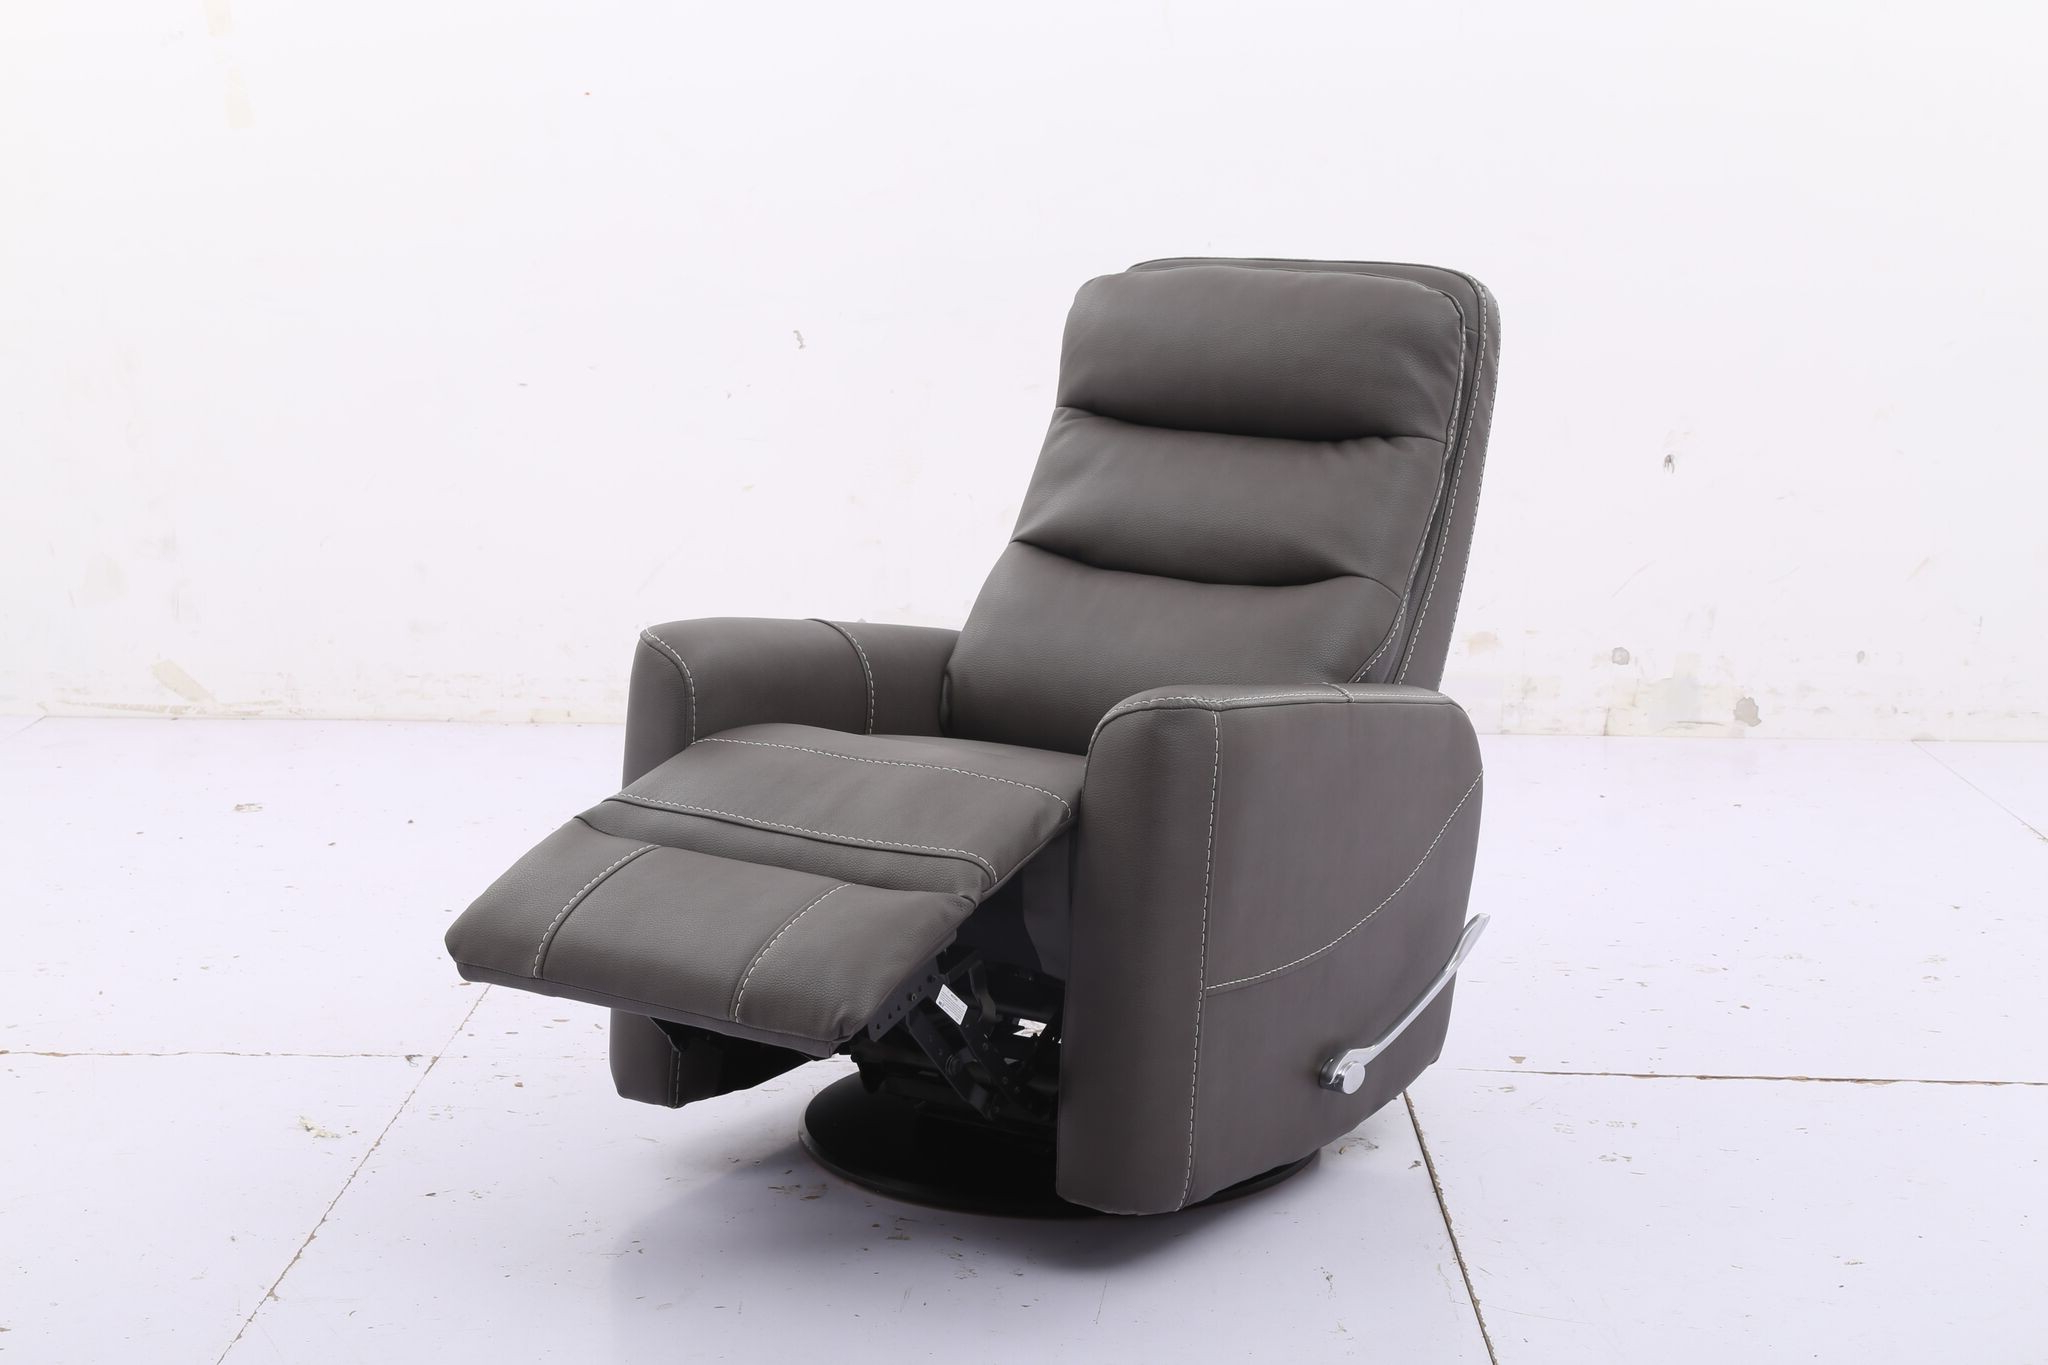 2019 Hercules  Haze  Swivel Glider Recliner With Articulating Headrest For Hercules Oyster Swivel Glider Recliners (View 2 of 20)